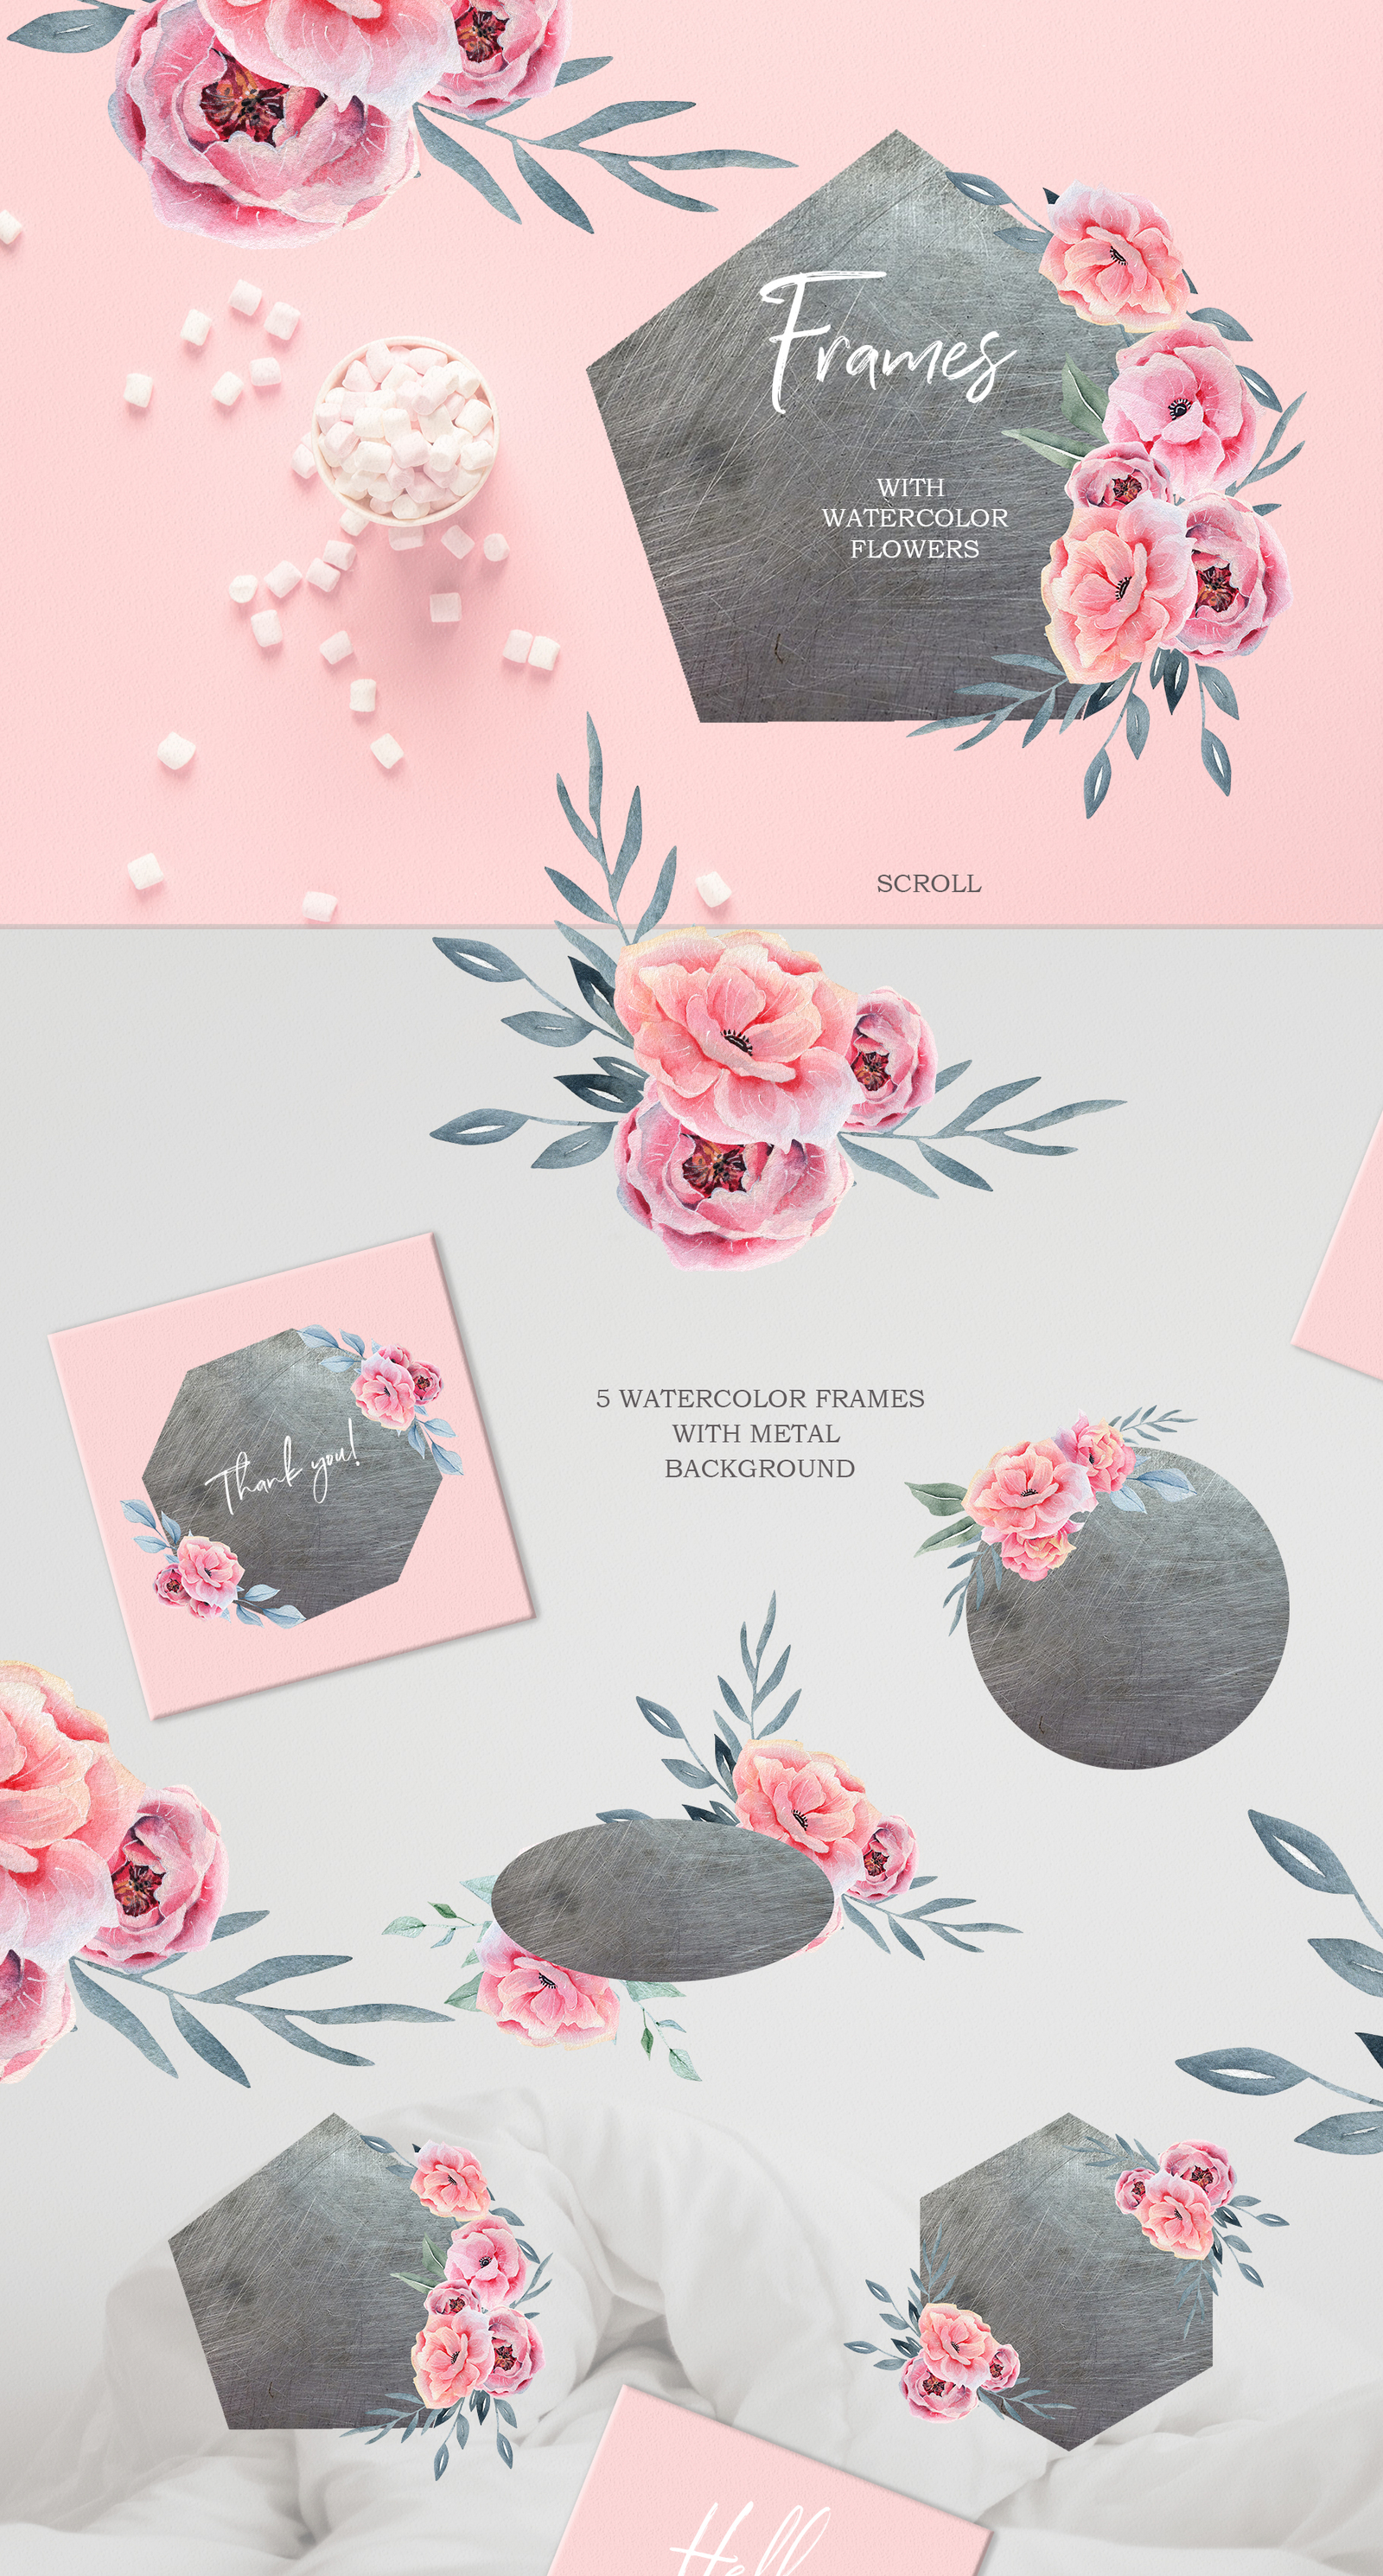 Watercolor Floral map, pink spring and summer flowers